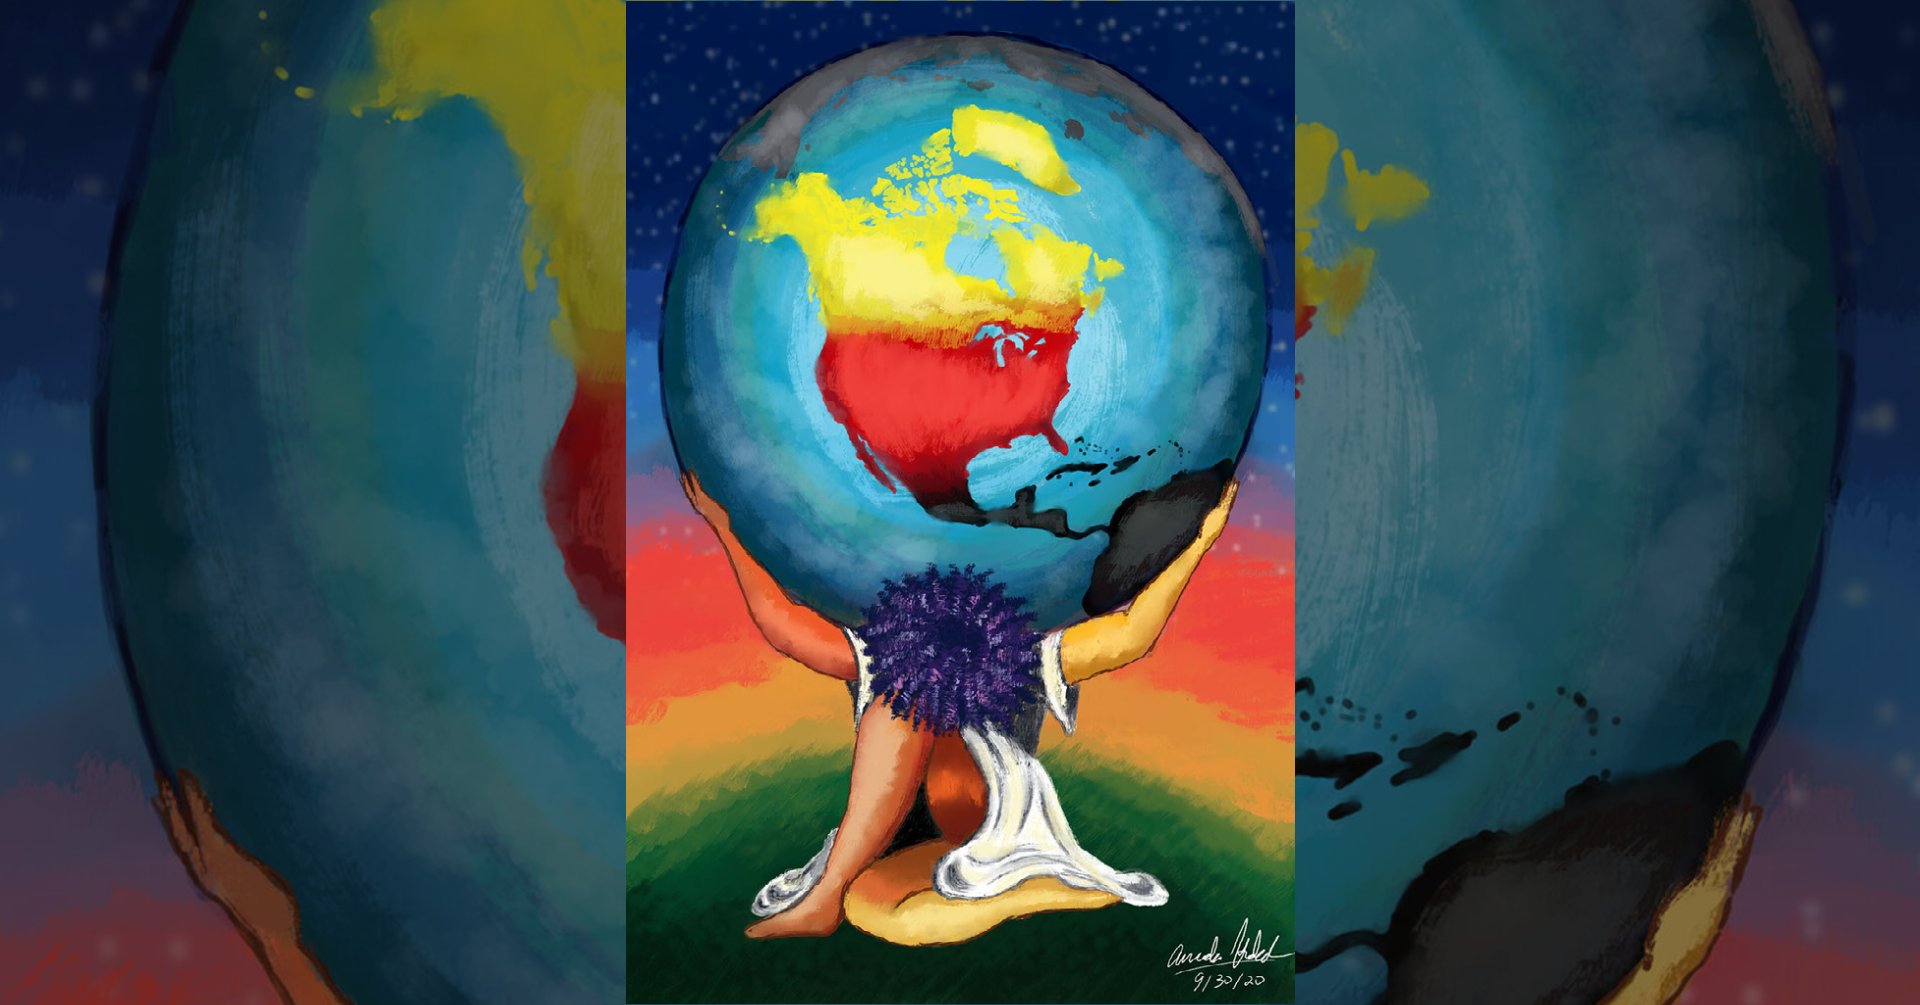 """Amanda Hudeck, public engagement coordinator at the Center for Educational Outreach, submitted this piece, titled """"The Weight of the World,"""" as part of the DEI Summit."""